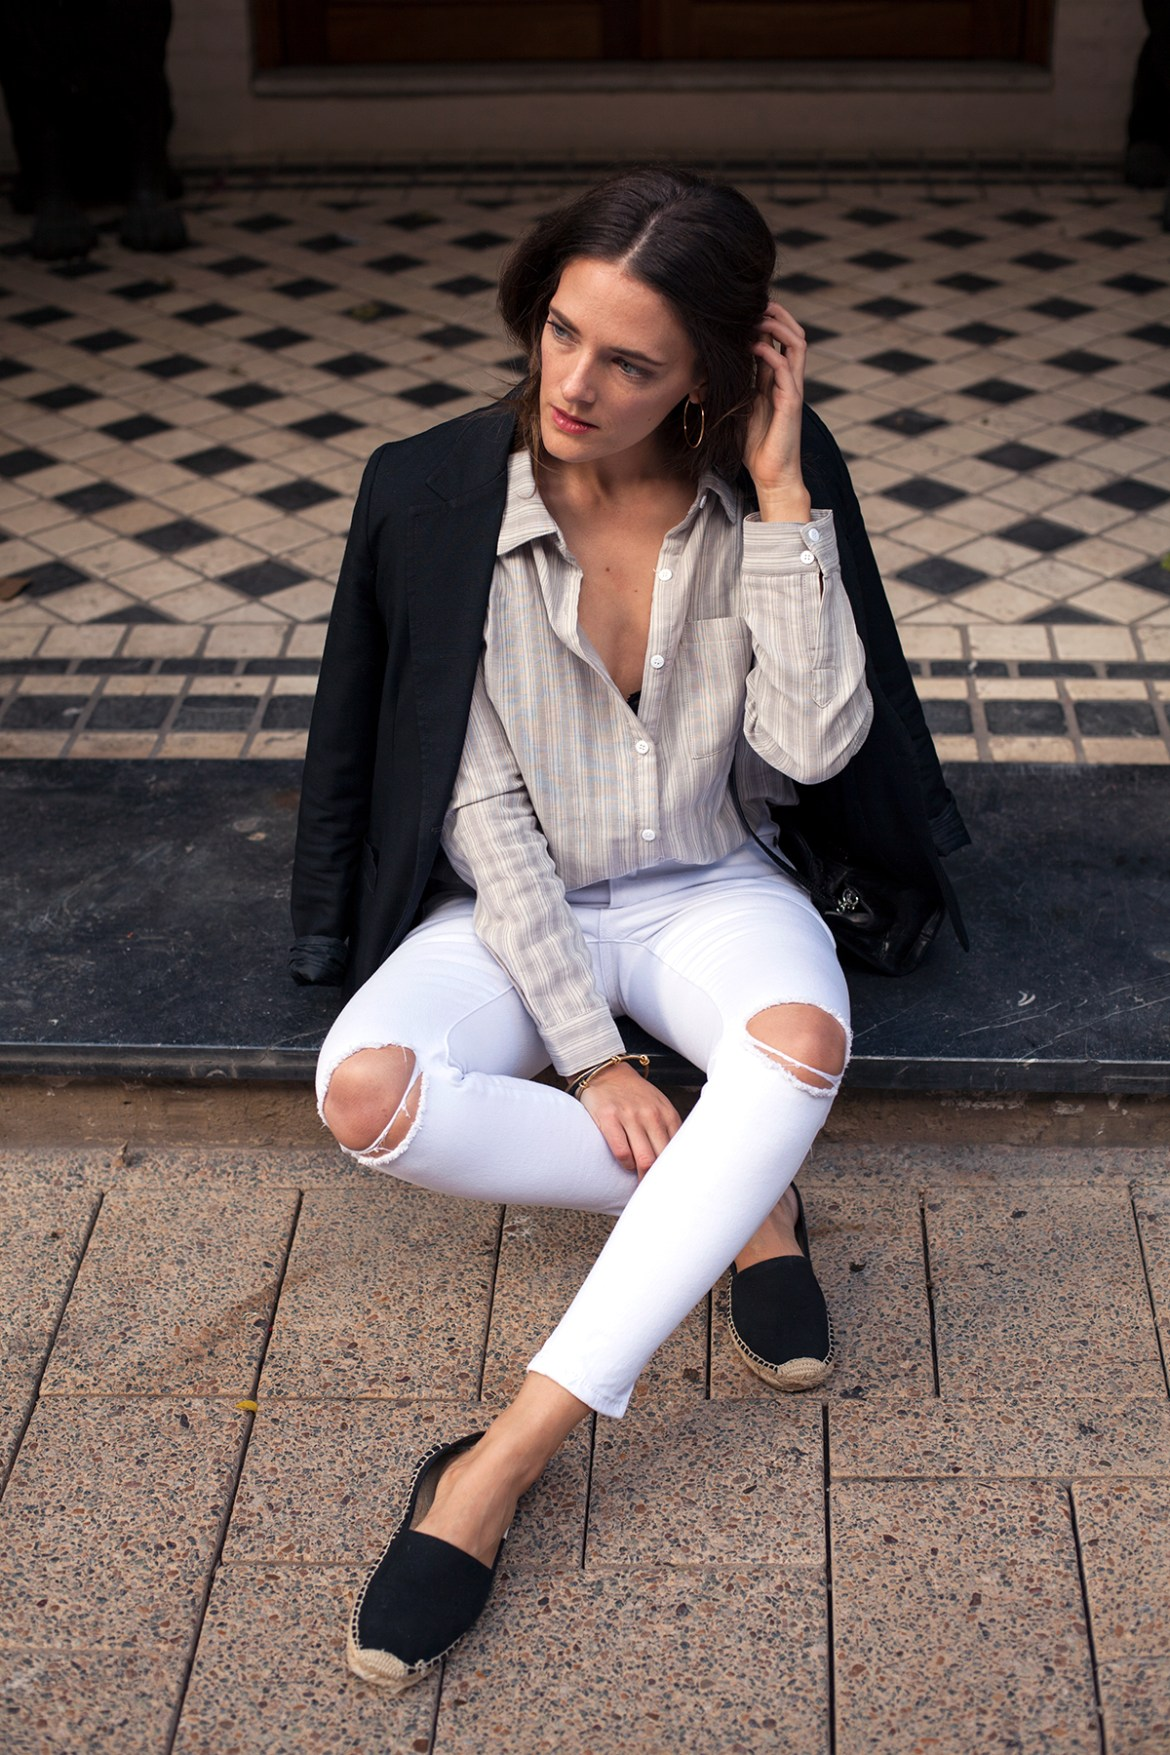 By The Weekend stripe cotton shirt worn by Inspiring Wit fashion blogger